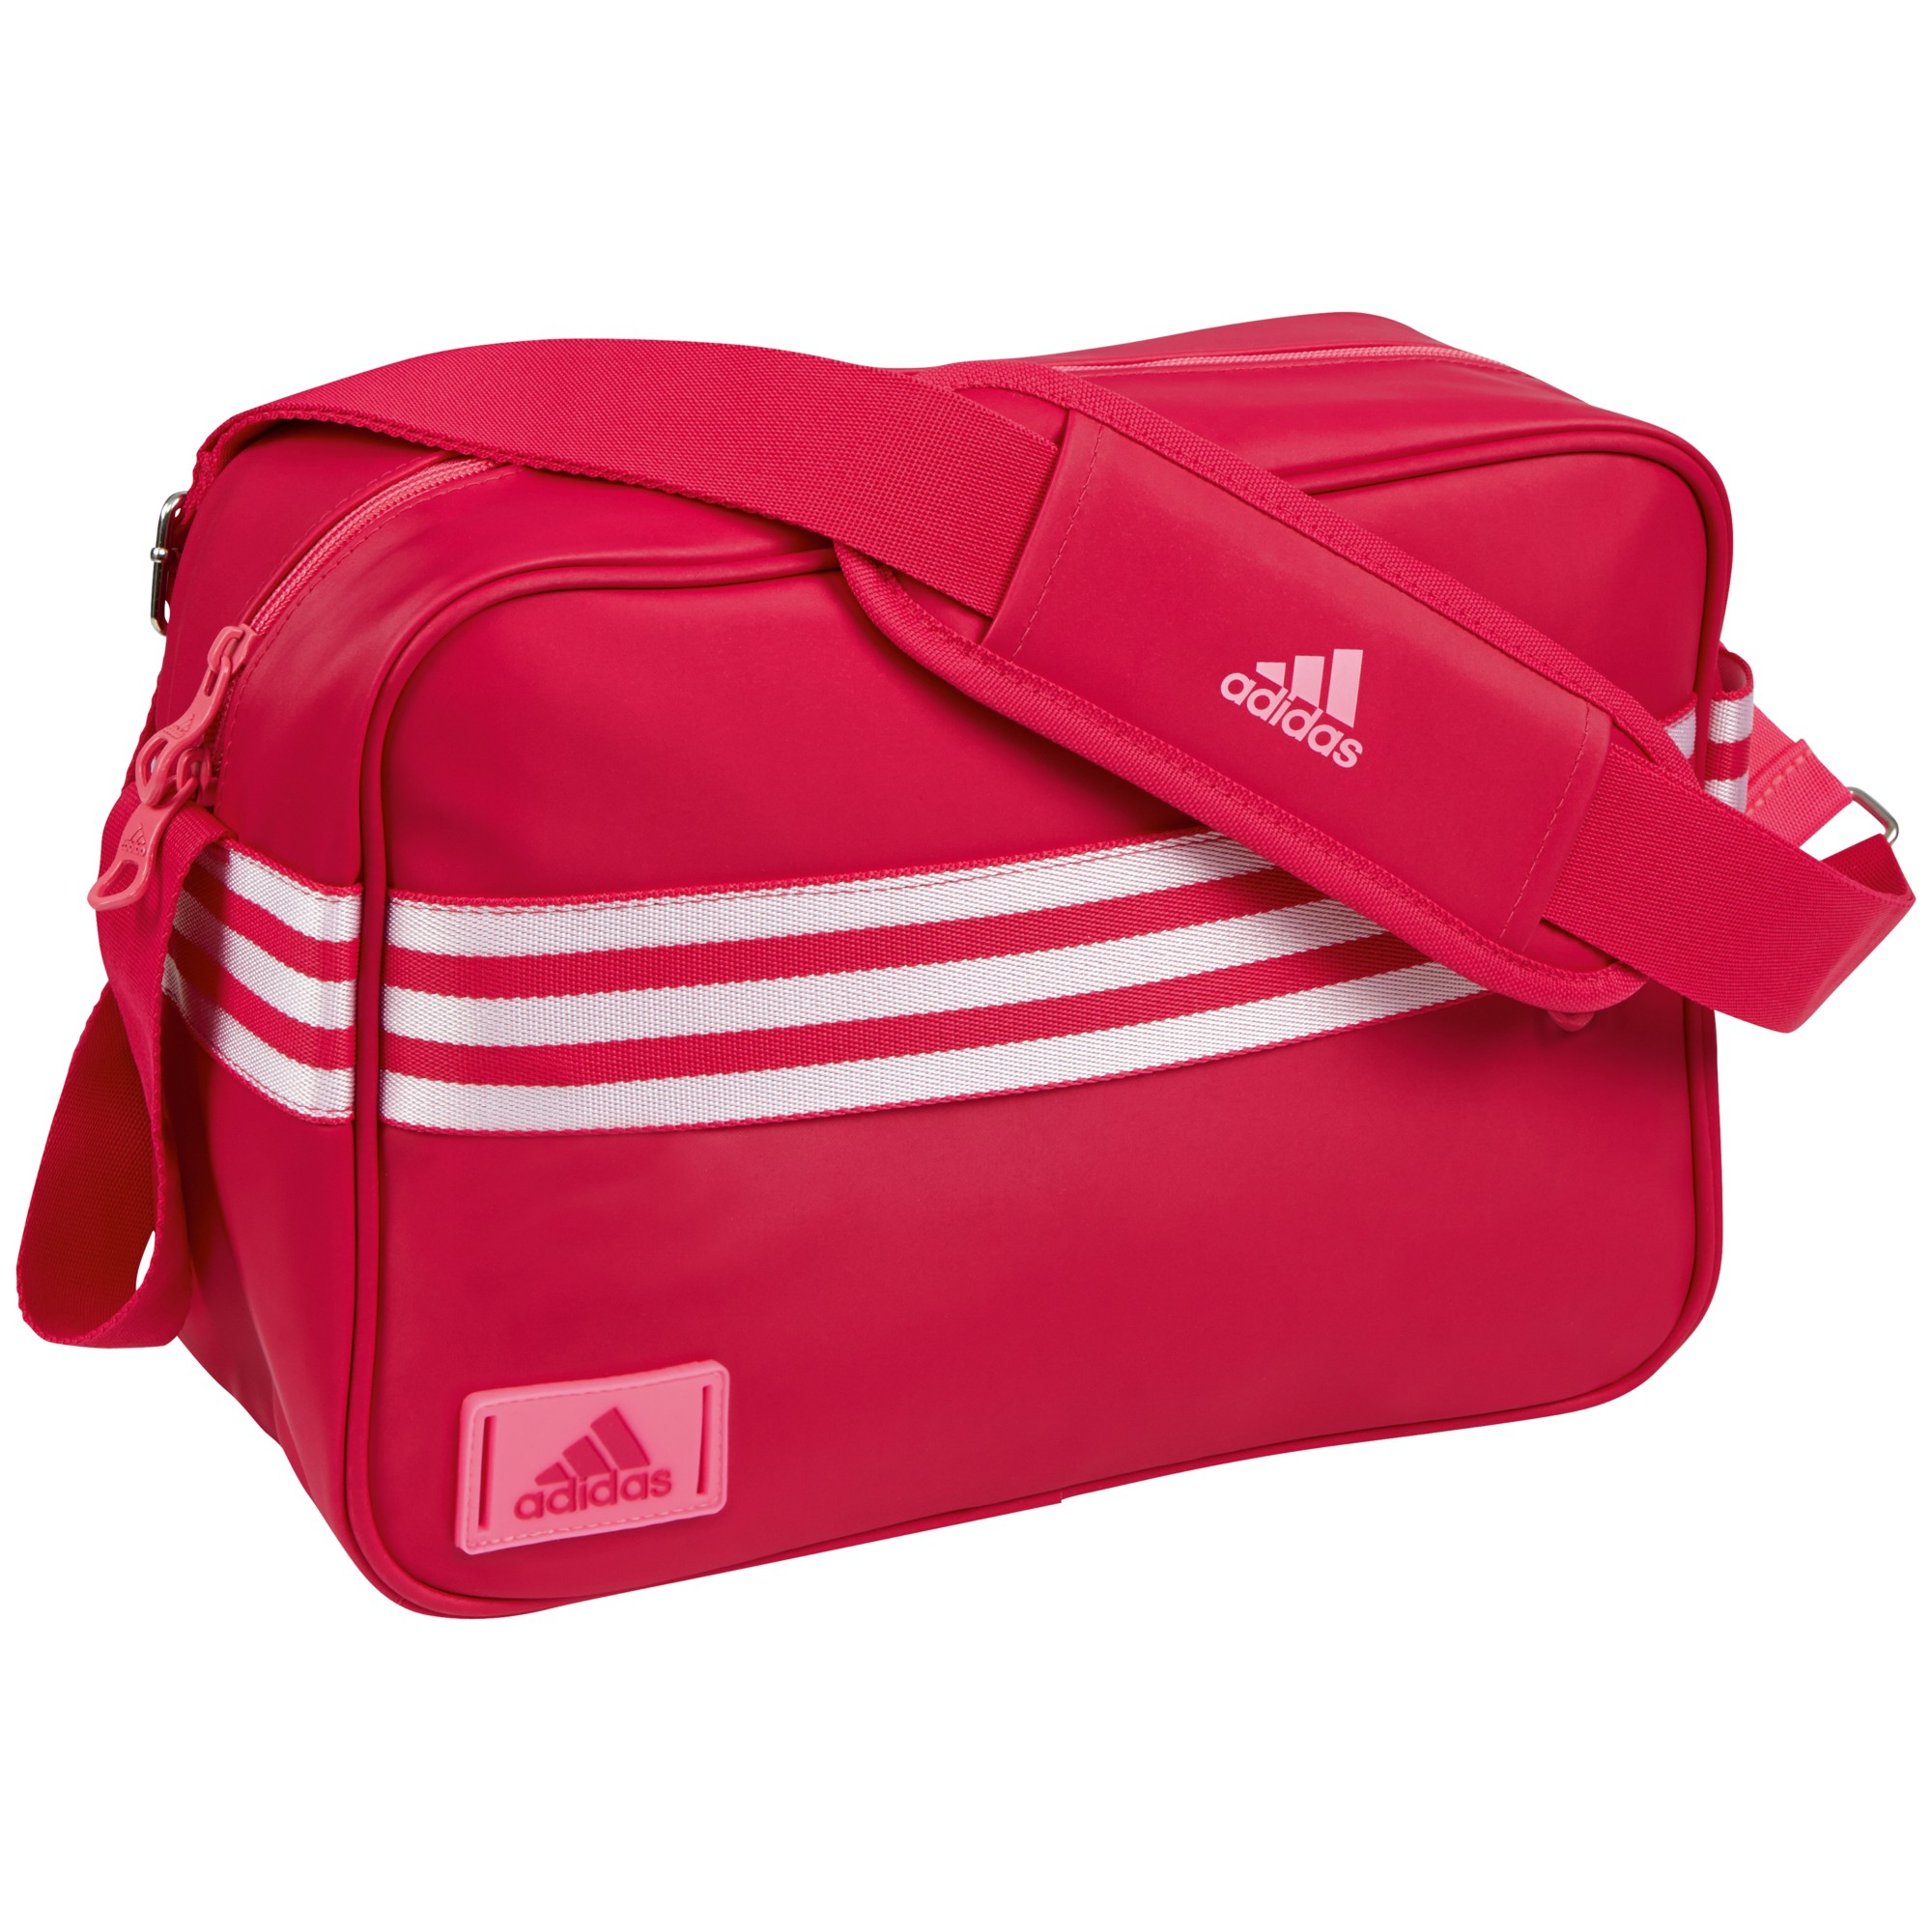 adidas Enamel Messenger Bag in Pink for Men - Lyst 6c07739982